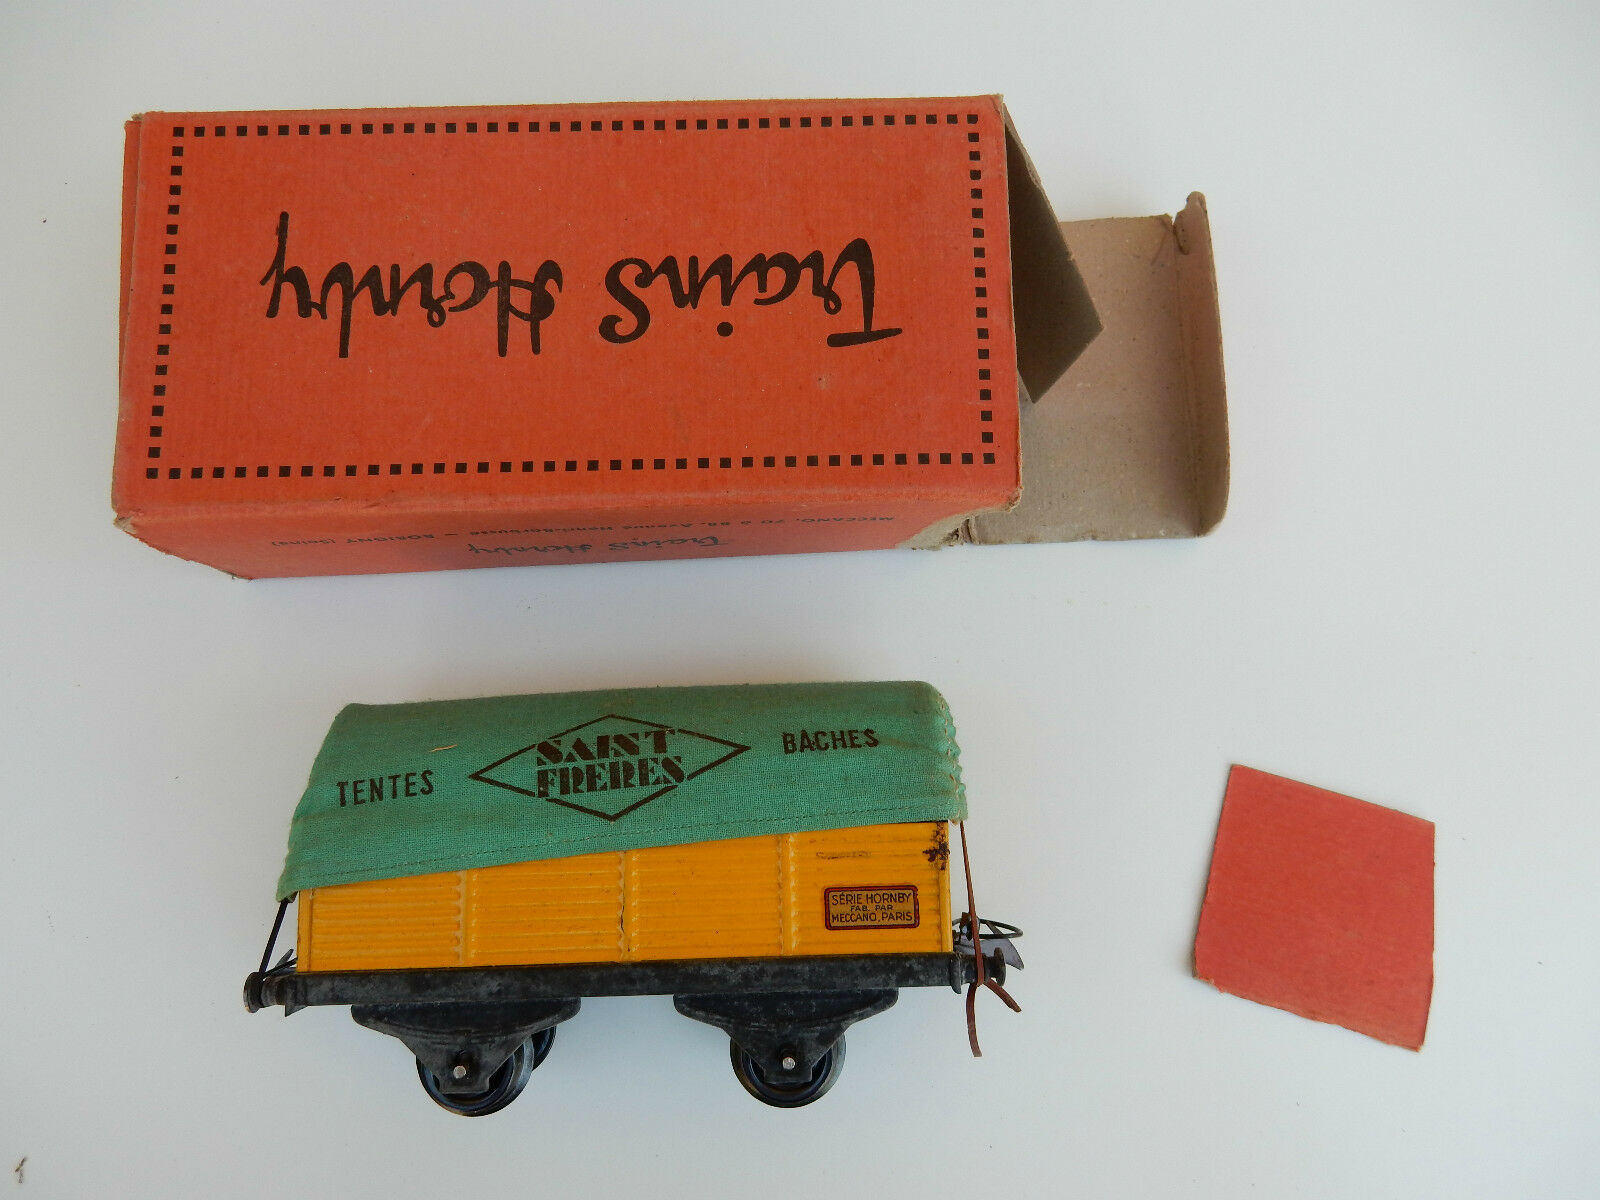 HORNBY BOXED GOODS WAGON   FRENCH ORIGIN  VERY NICE  SEE IMAGES